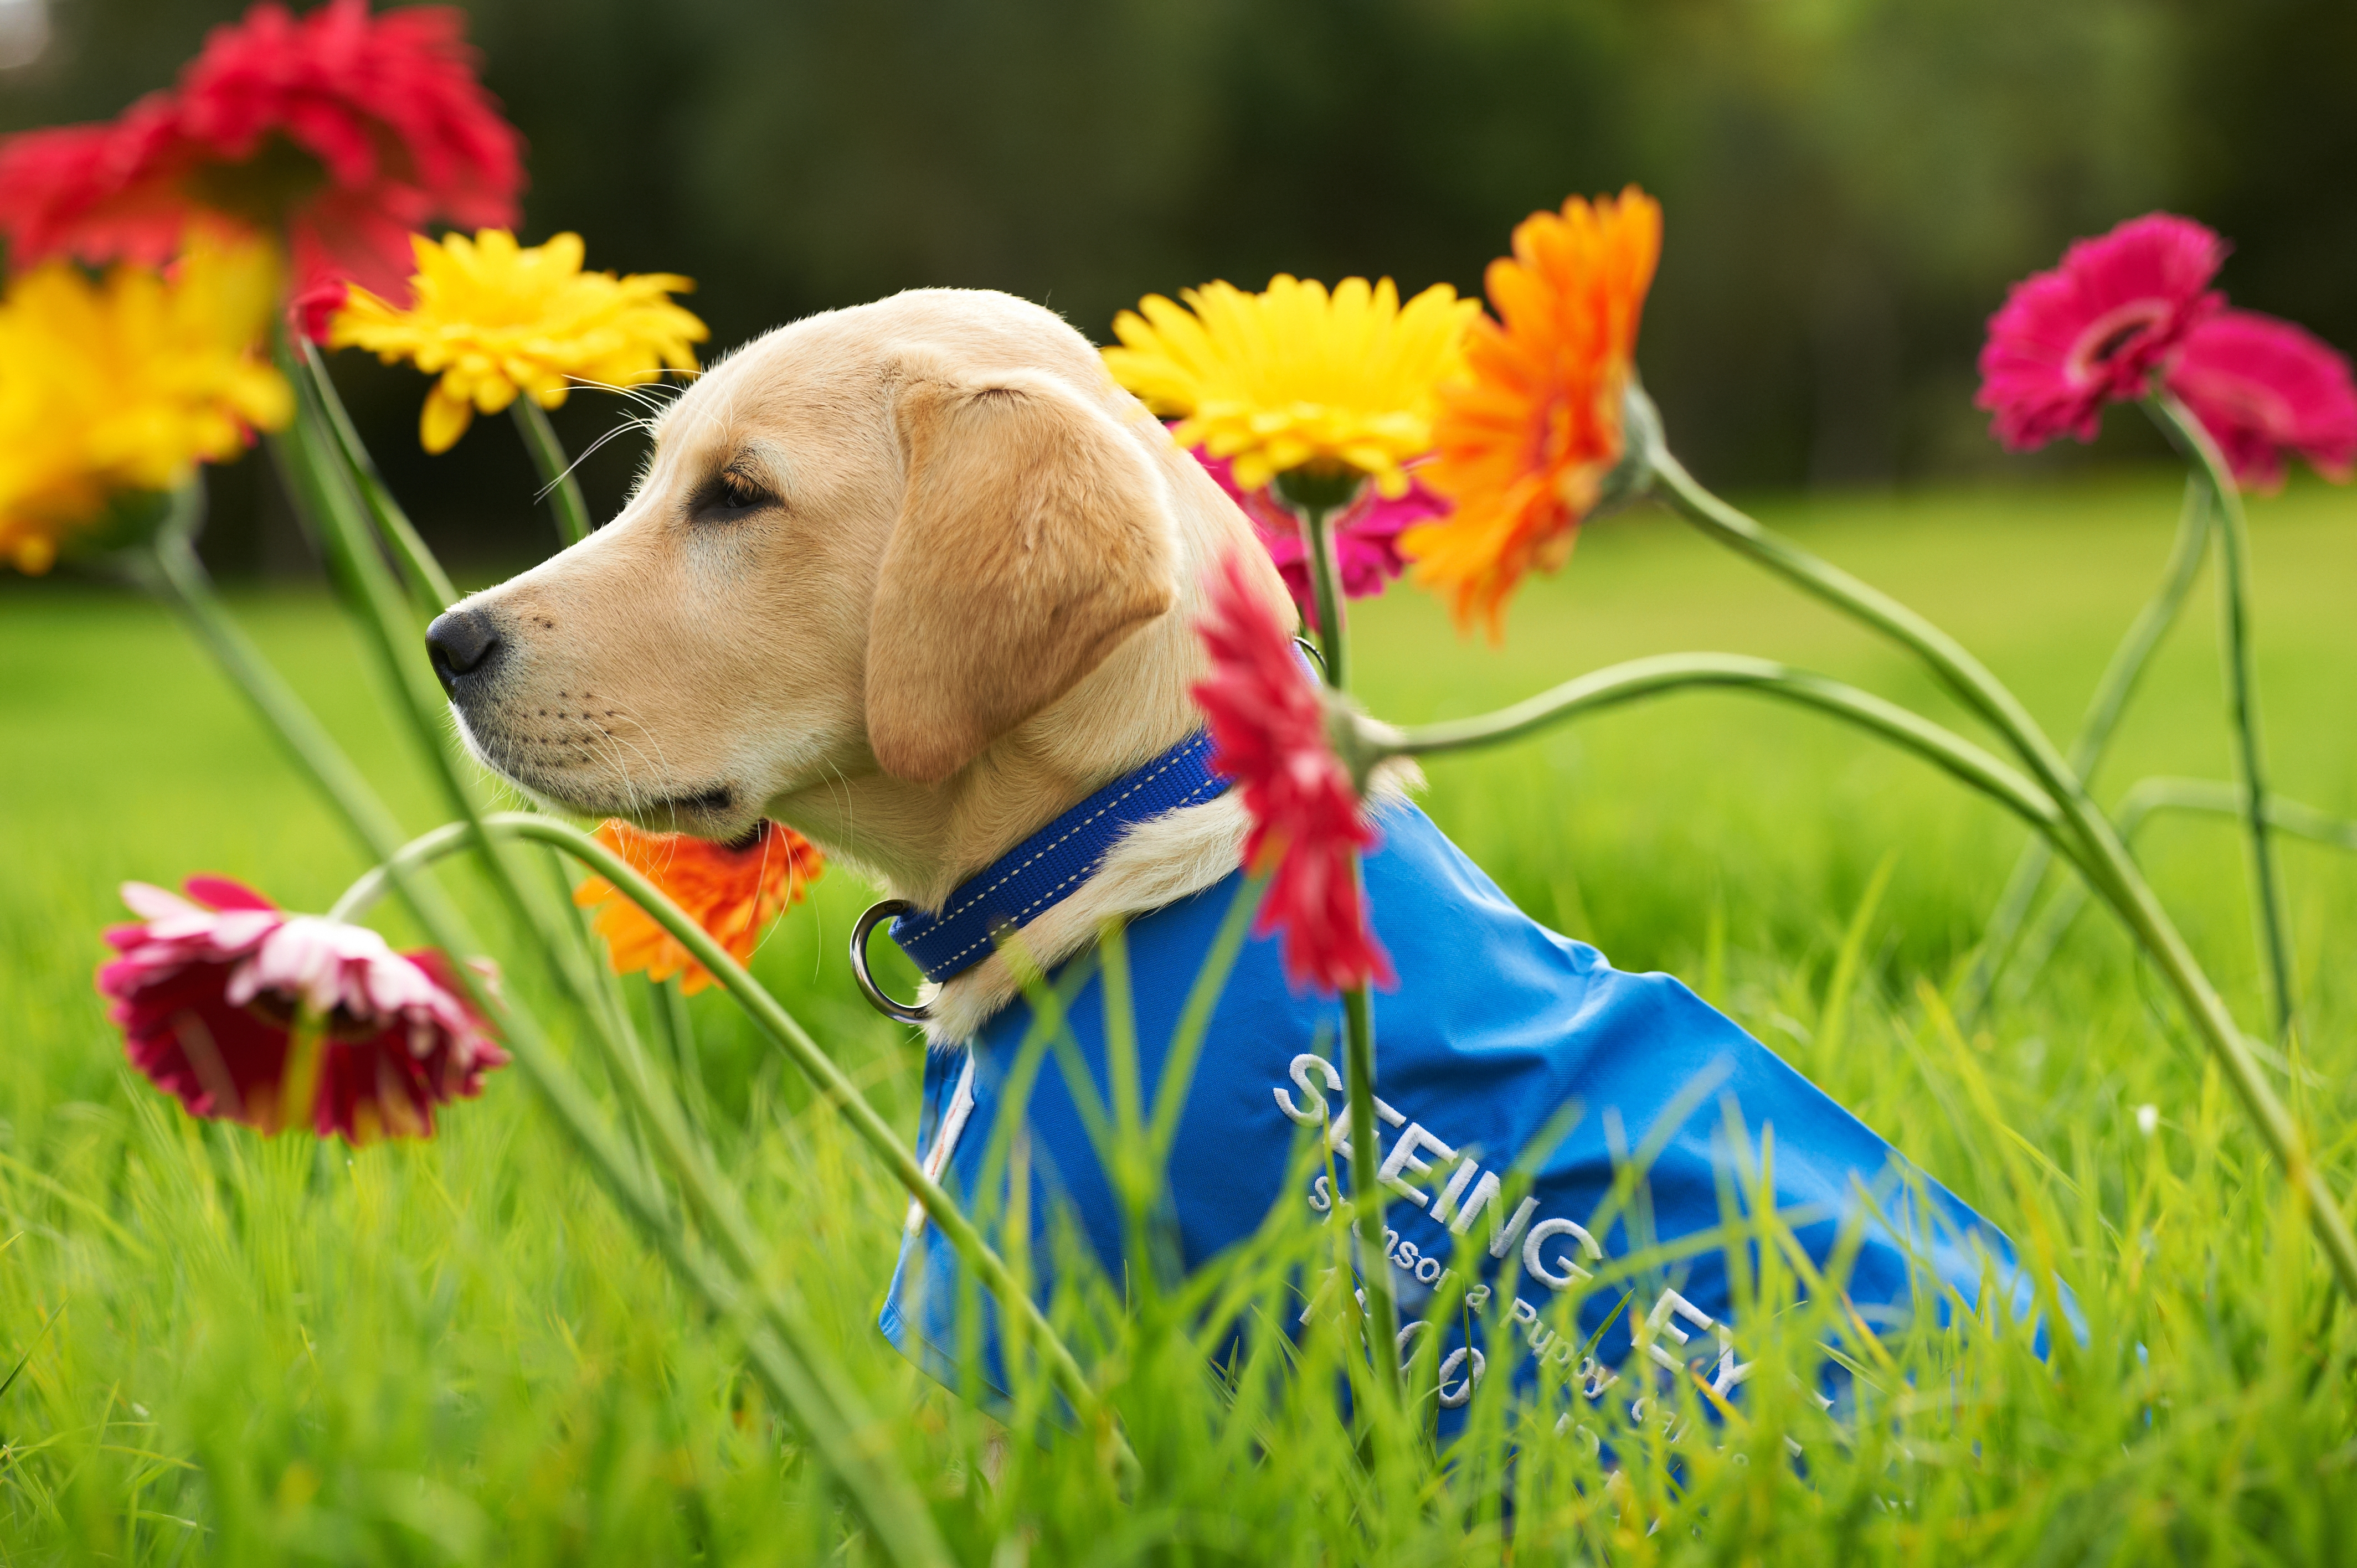 Puppy in coat sitting in a field with flowers